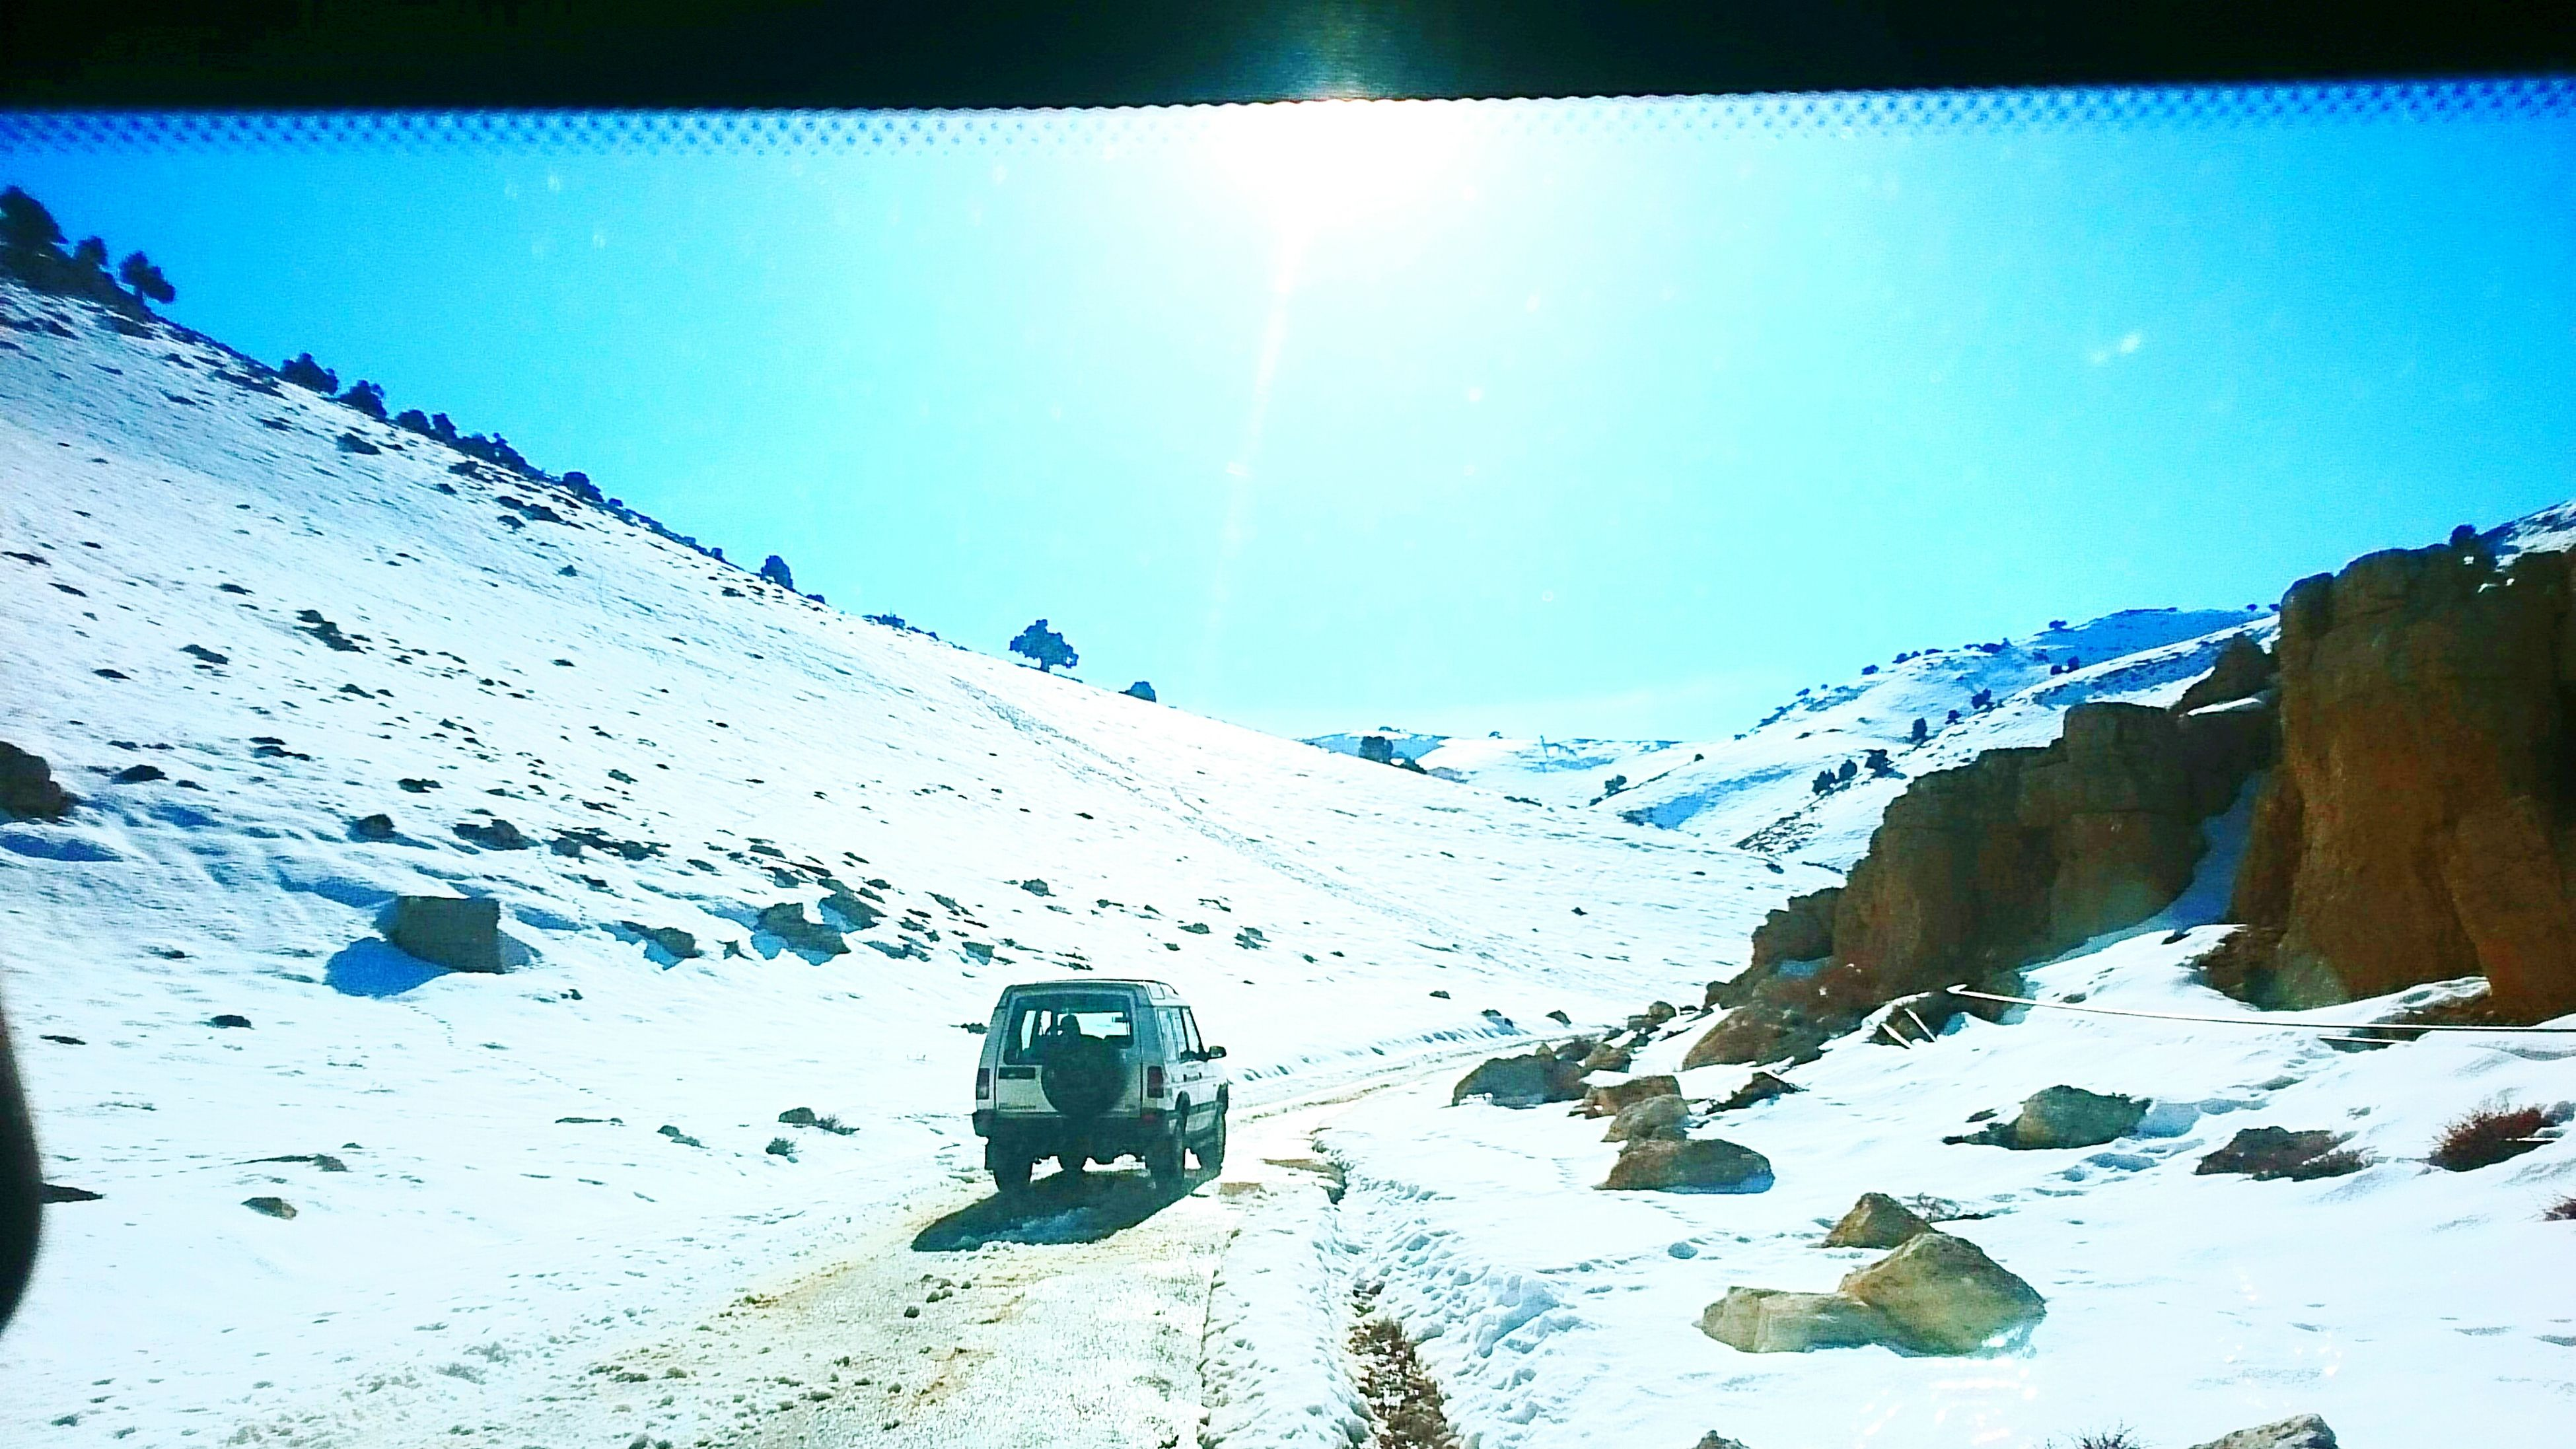 snow, winter, cold temperature, season, clear sky, weather, blue, covering, nature, frozen, sunlight, sun, mountain, tranquility, beauty in nature, landscape, copy space, tranquil scene, white color, transportation